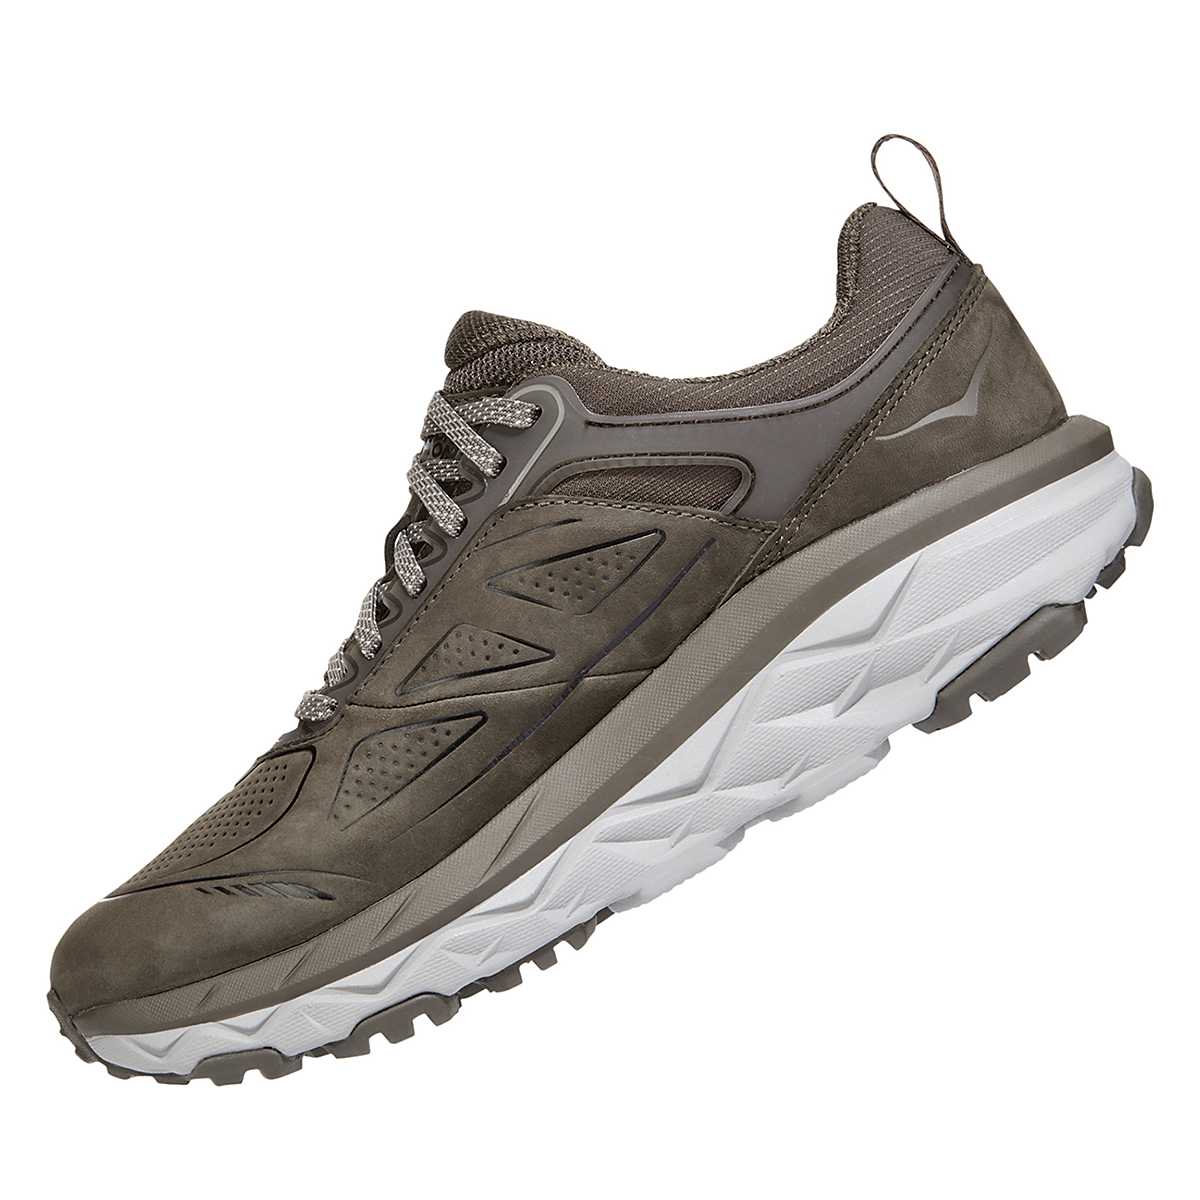 Women's Hoka One One Challenger Low Gore-Tex Trail Running Shoe - Color: Major Brown/Heather - Size: 5 - Width: Regular, Major Brown/Heather, large, image 4